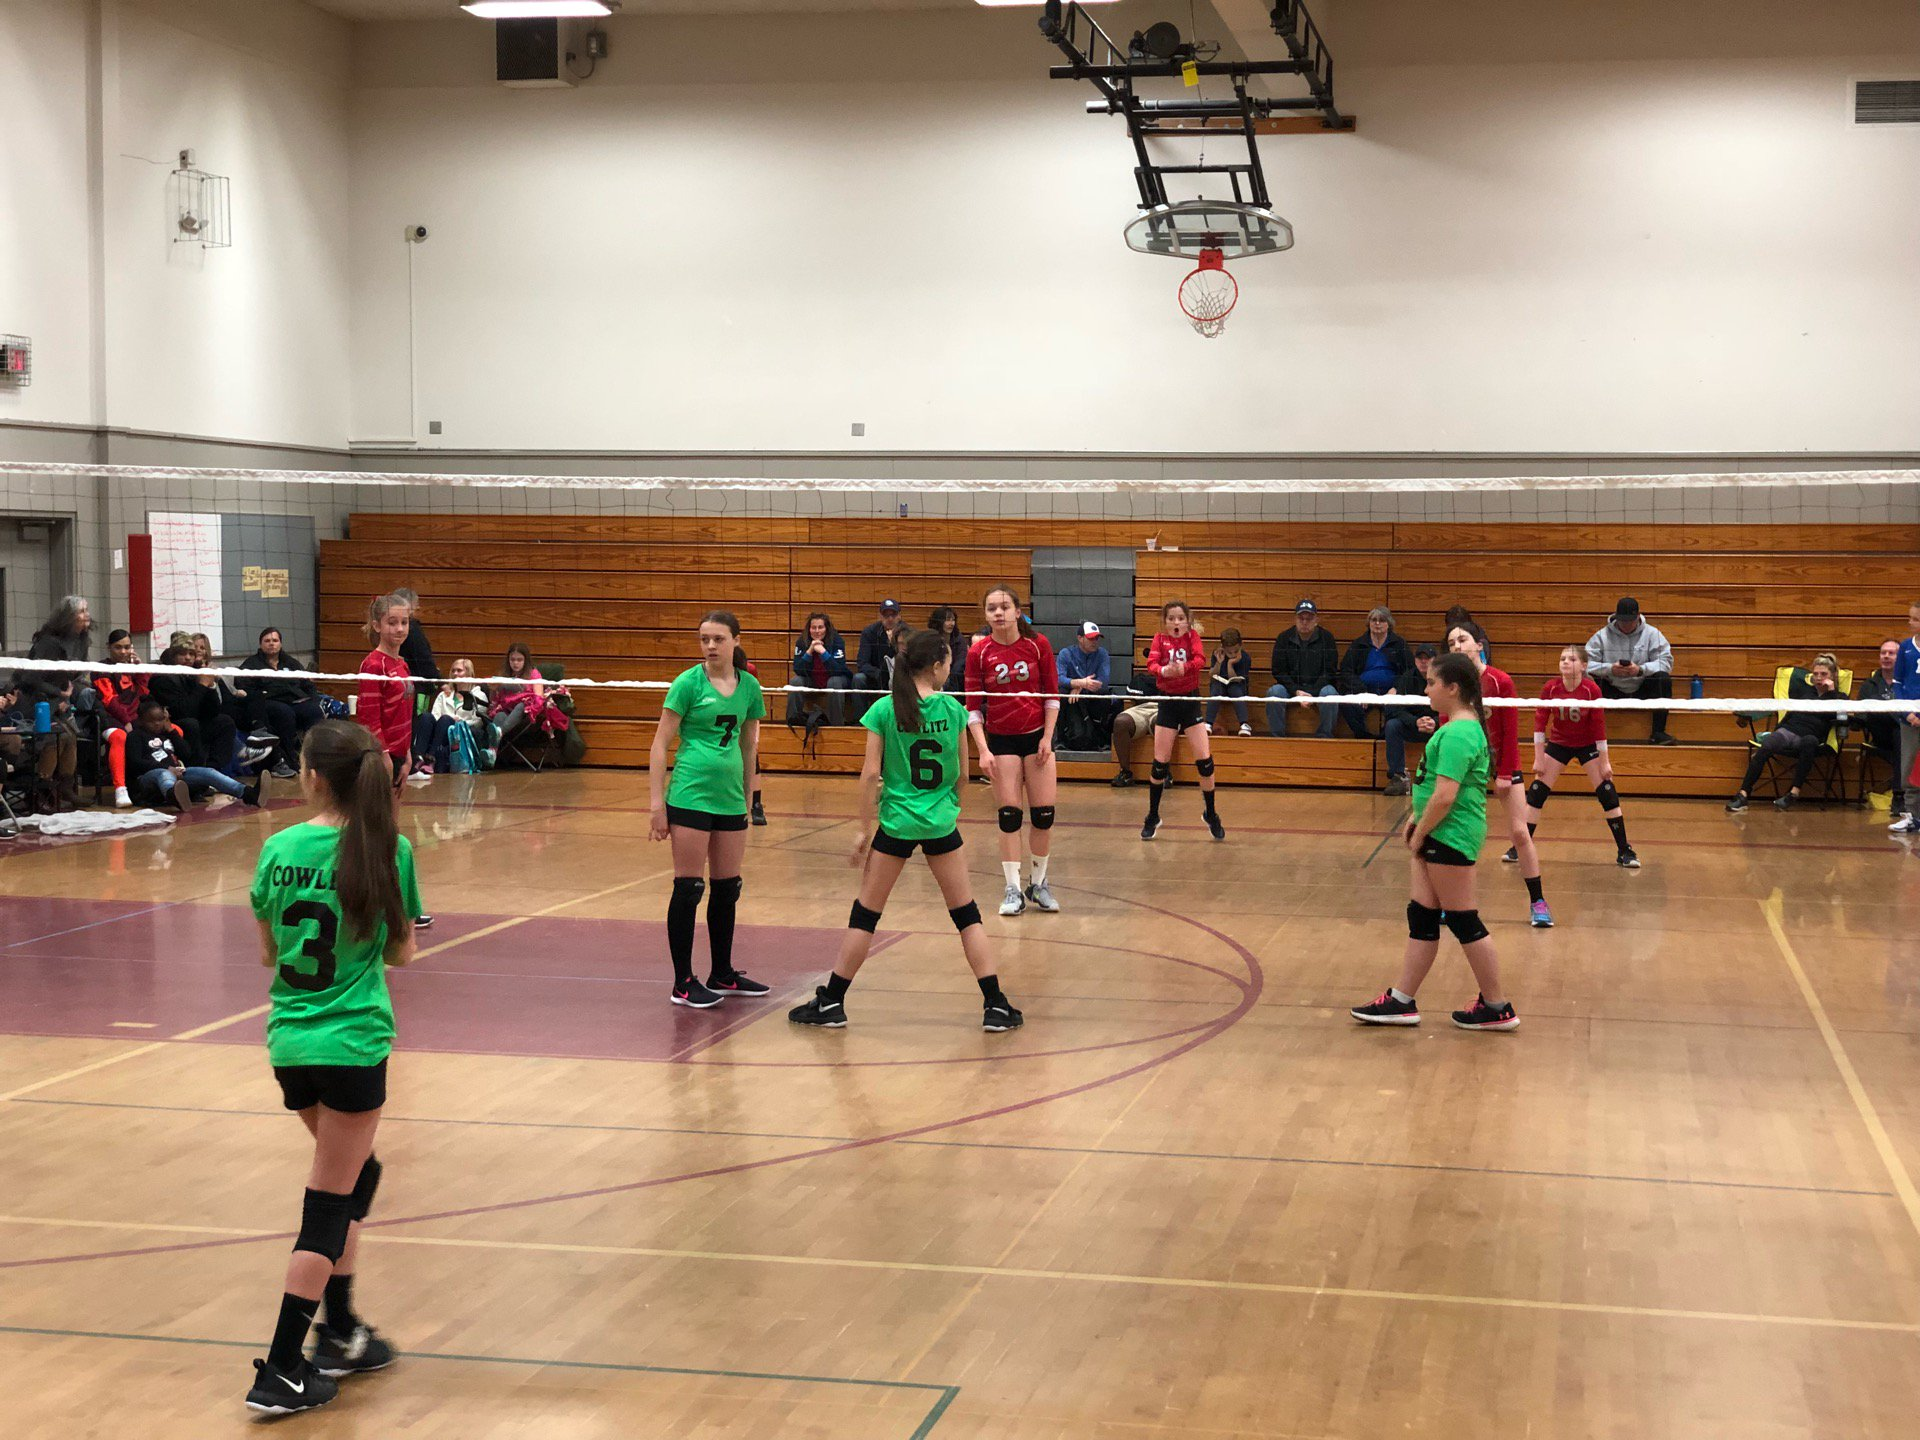 Volleyball tournament (@ Coweeman Middle…